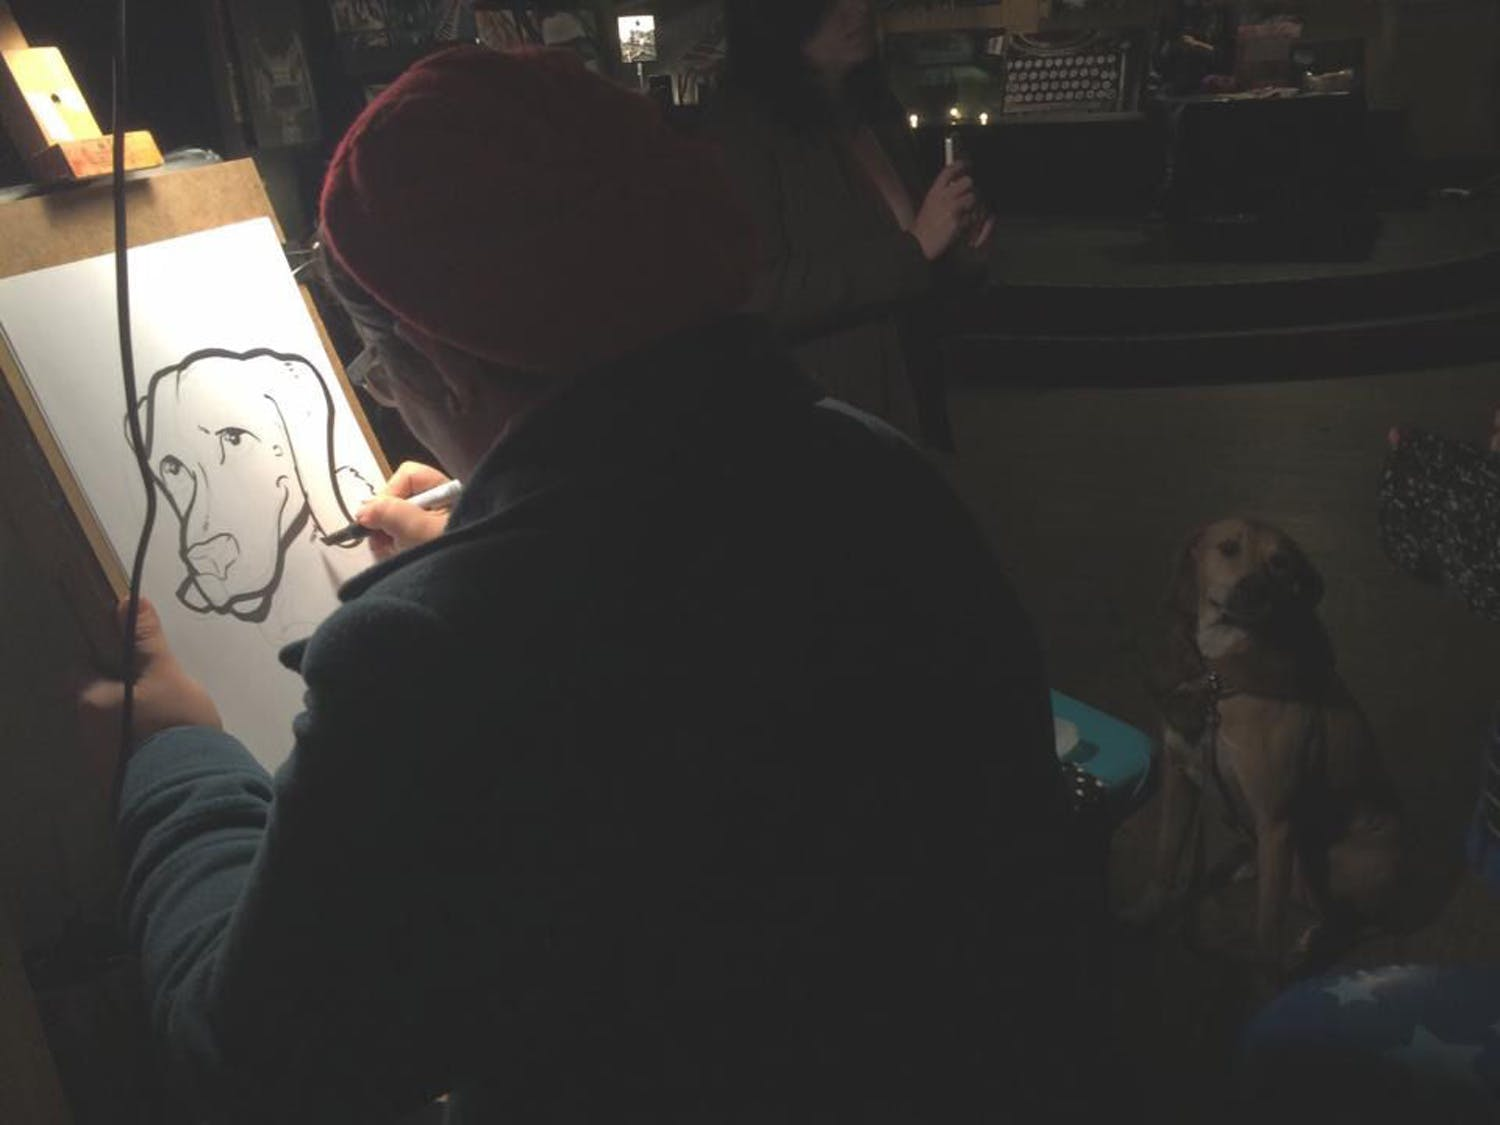 Local caricature artist Corinne Halley draws a caricature of a patron's dog during February's Art Attack at High Dive, 210 SW Second Ave. High Dive's Art Attack will be part of Artwalk Gainesville for the first time on Friday. While the event is free, donations are welcomed to keep the event free of charge for its patrons and vendors.